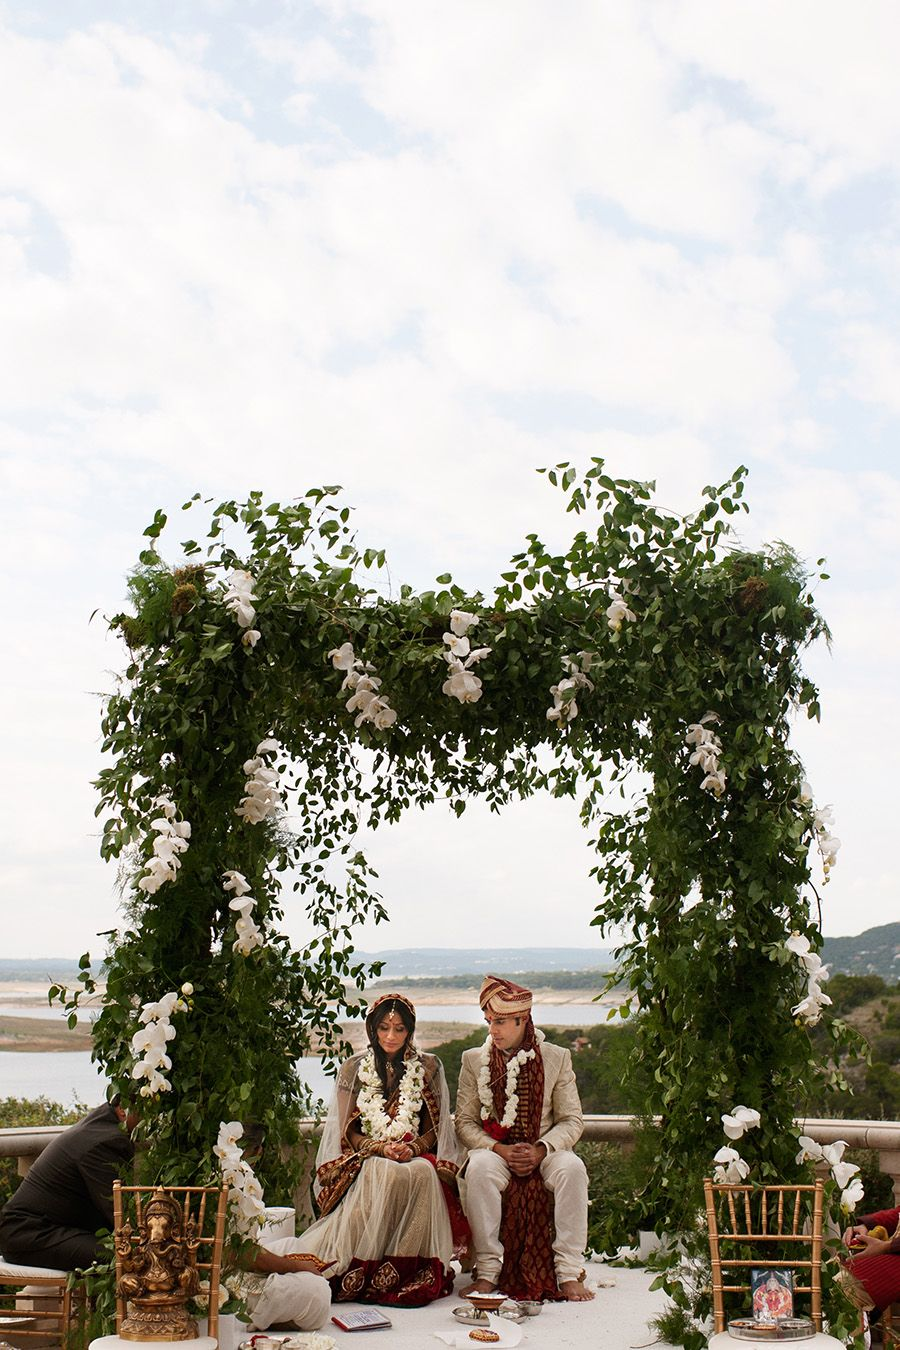 Outdoor weddings venues in austin texas villa del lago photo by outdoor weddings venues in austin texas villa del lago photo by kristi wright photography junglespirit Choice Image